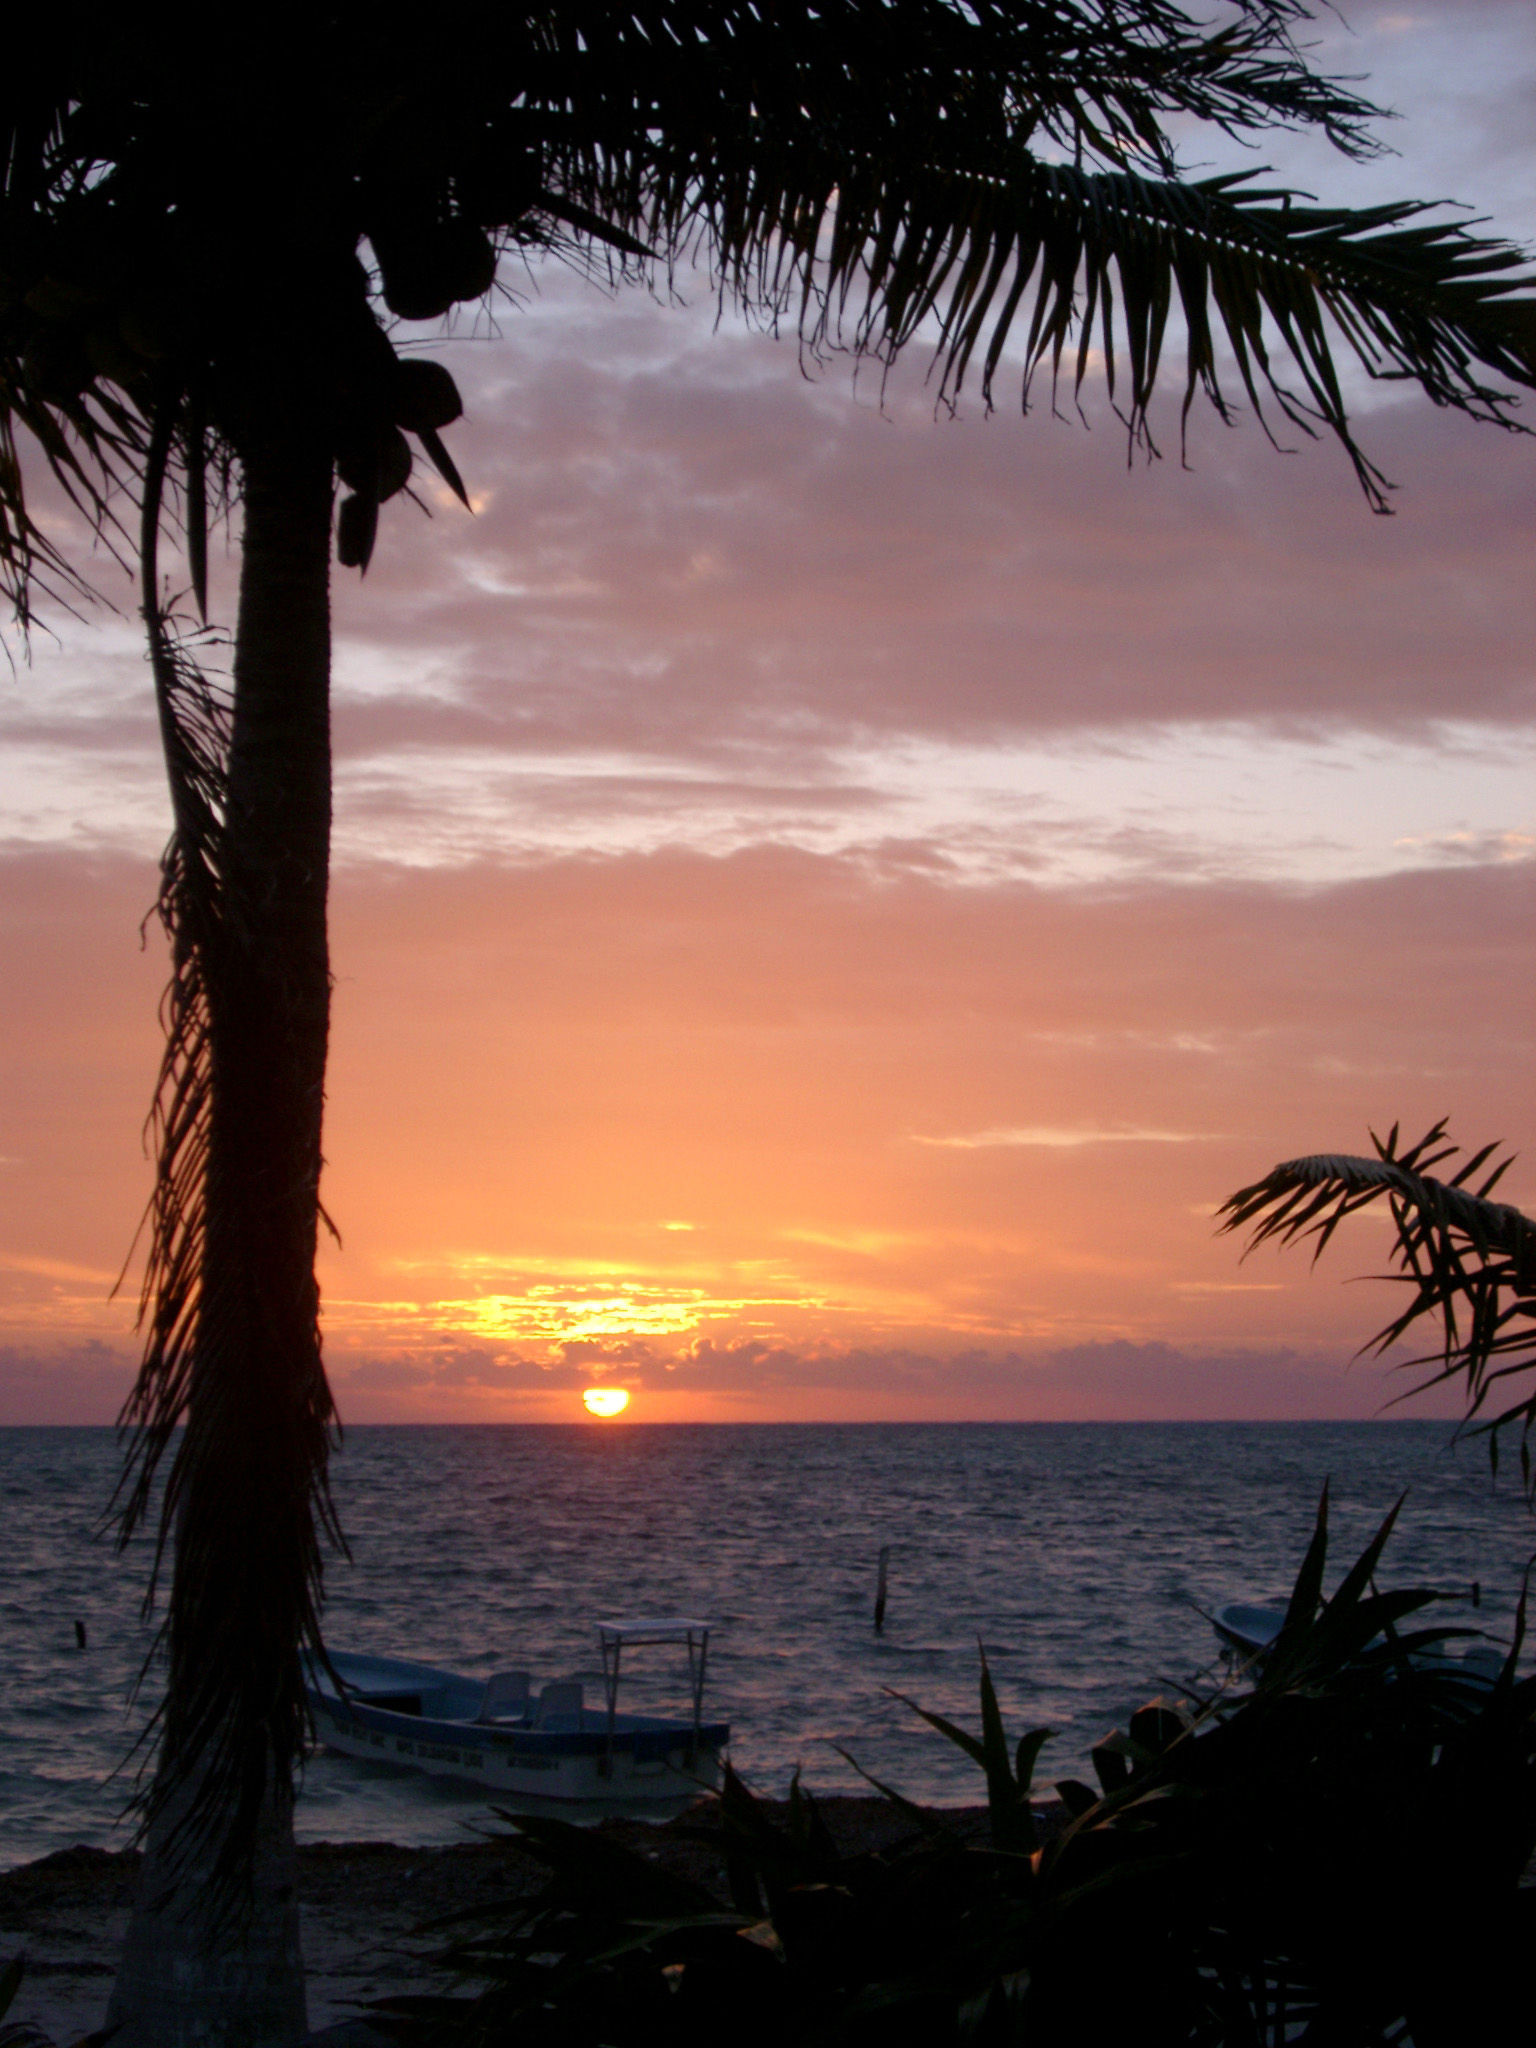 Palm trees silhouetted against a colorful tropical sunset over the ocean in Mexico, symbolic of summer vacations and travel